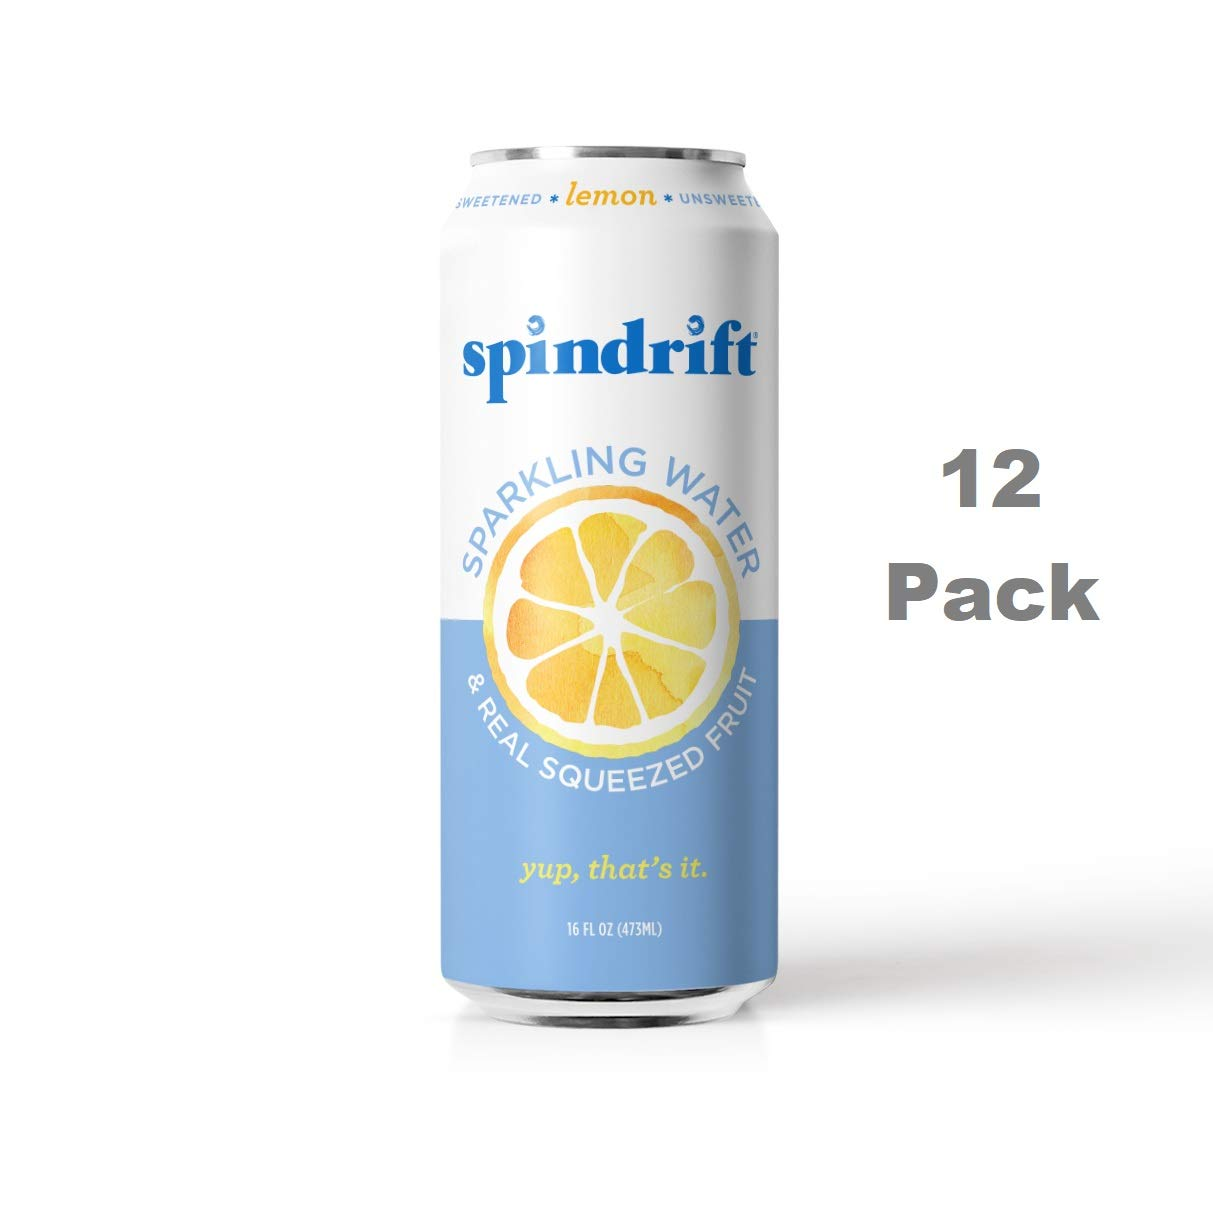 Spindrift Sparkling Water, Lemon Flavored, Made with Real Squeezed Fruit, 16 Fluid Ounce Cans, Pack of 12 (Only 4 Calories per Seltzer Water Can)